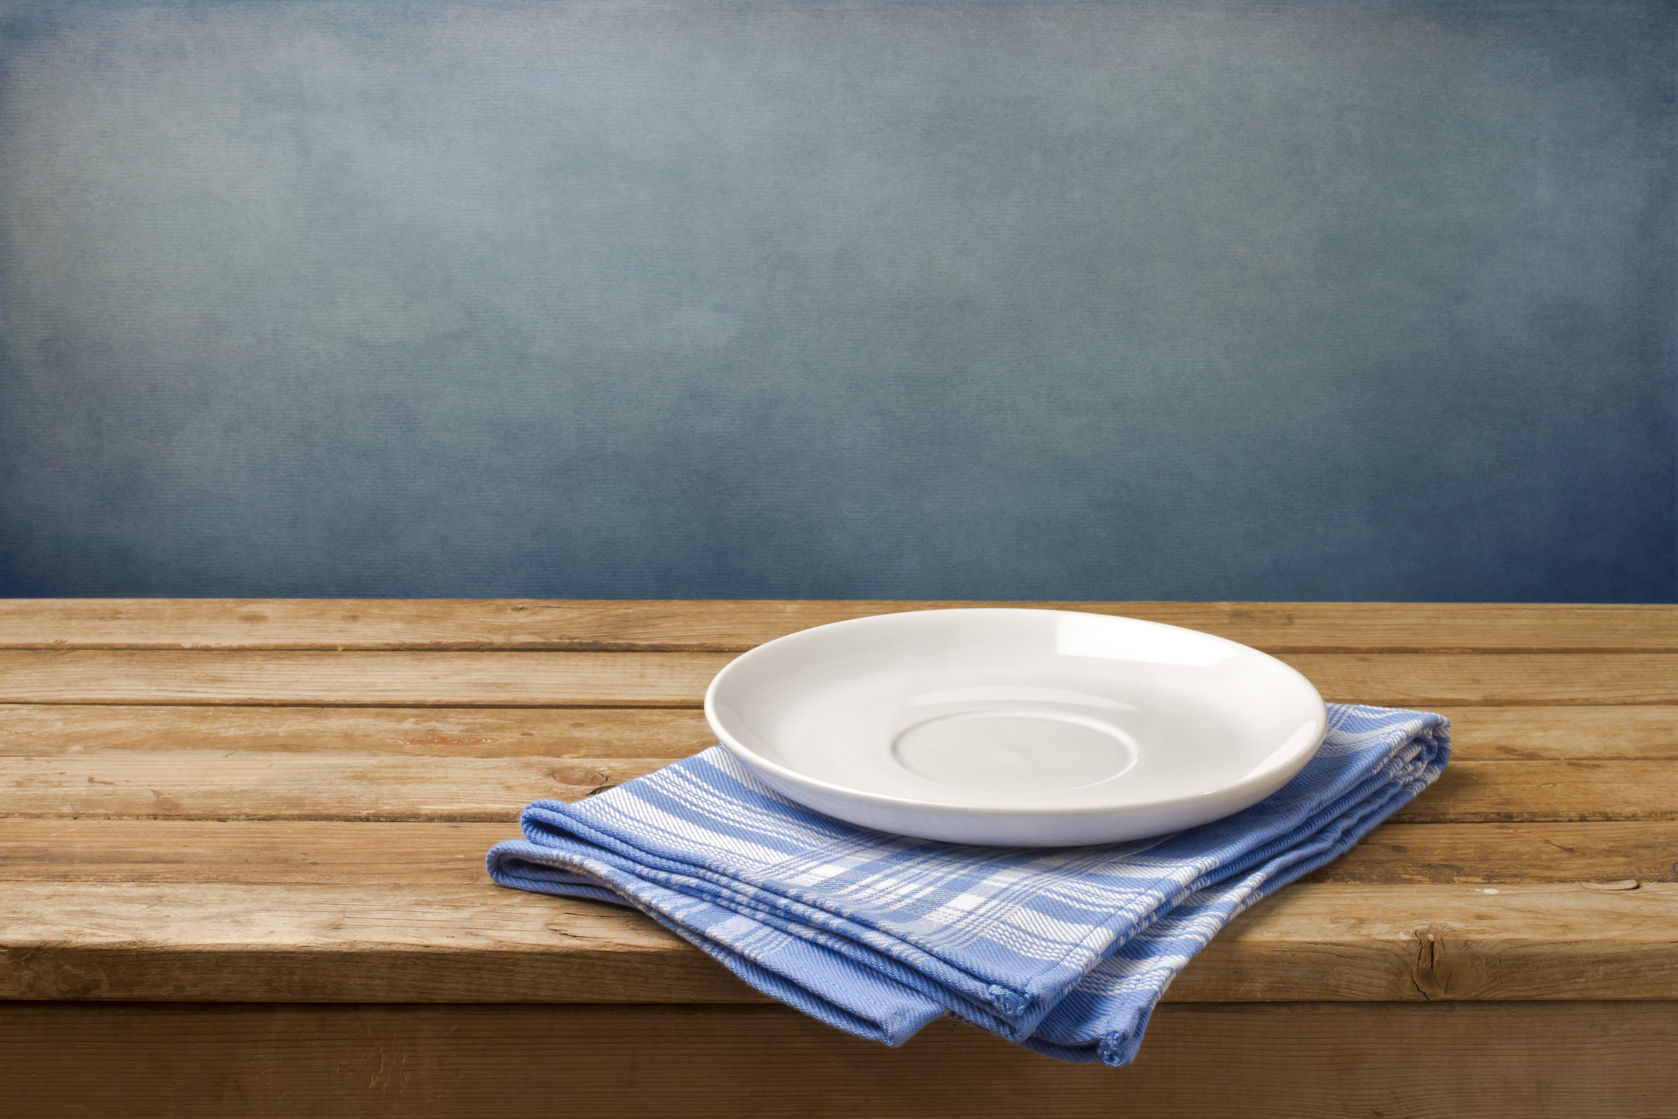 Fasting: Health Deprivation or Food For Your Brain?